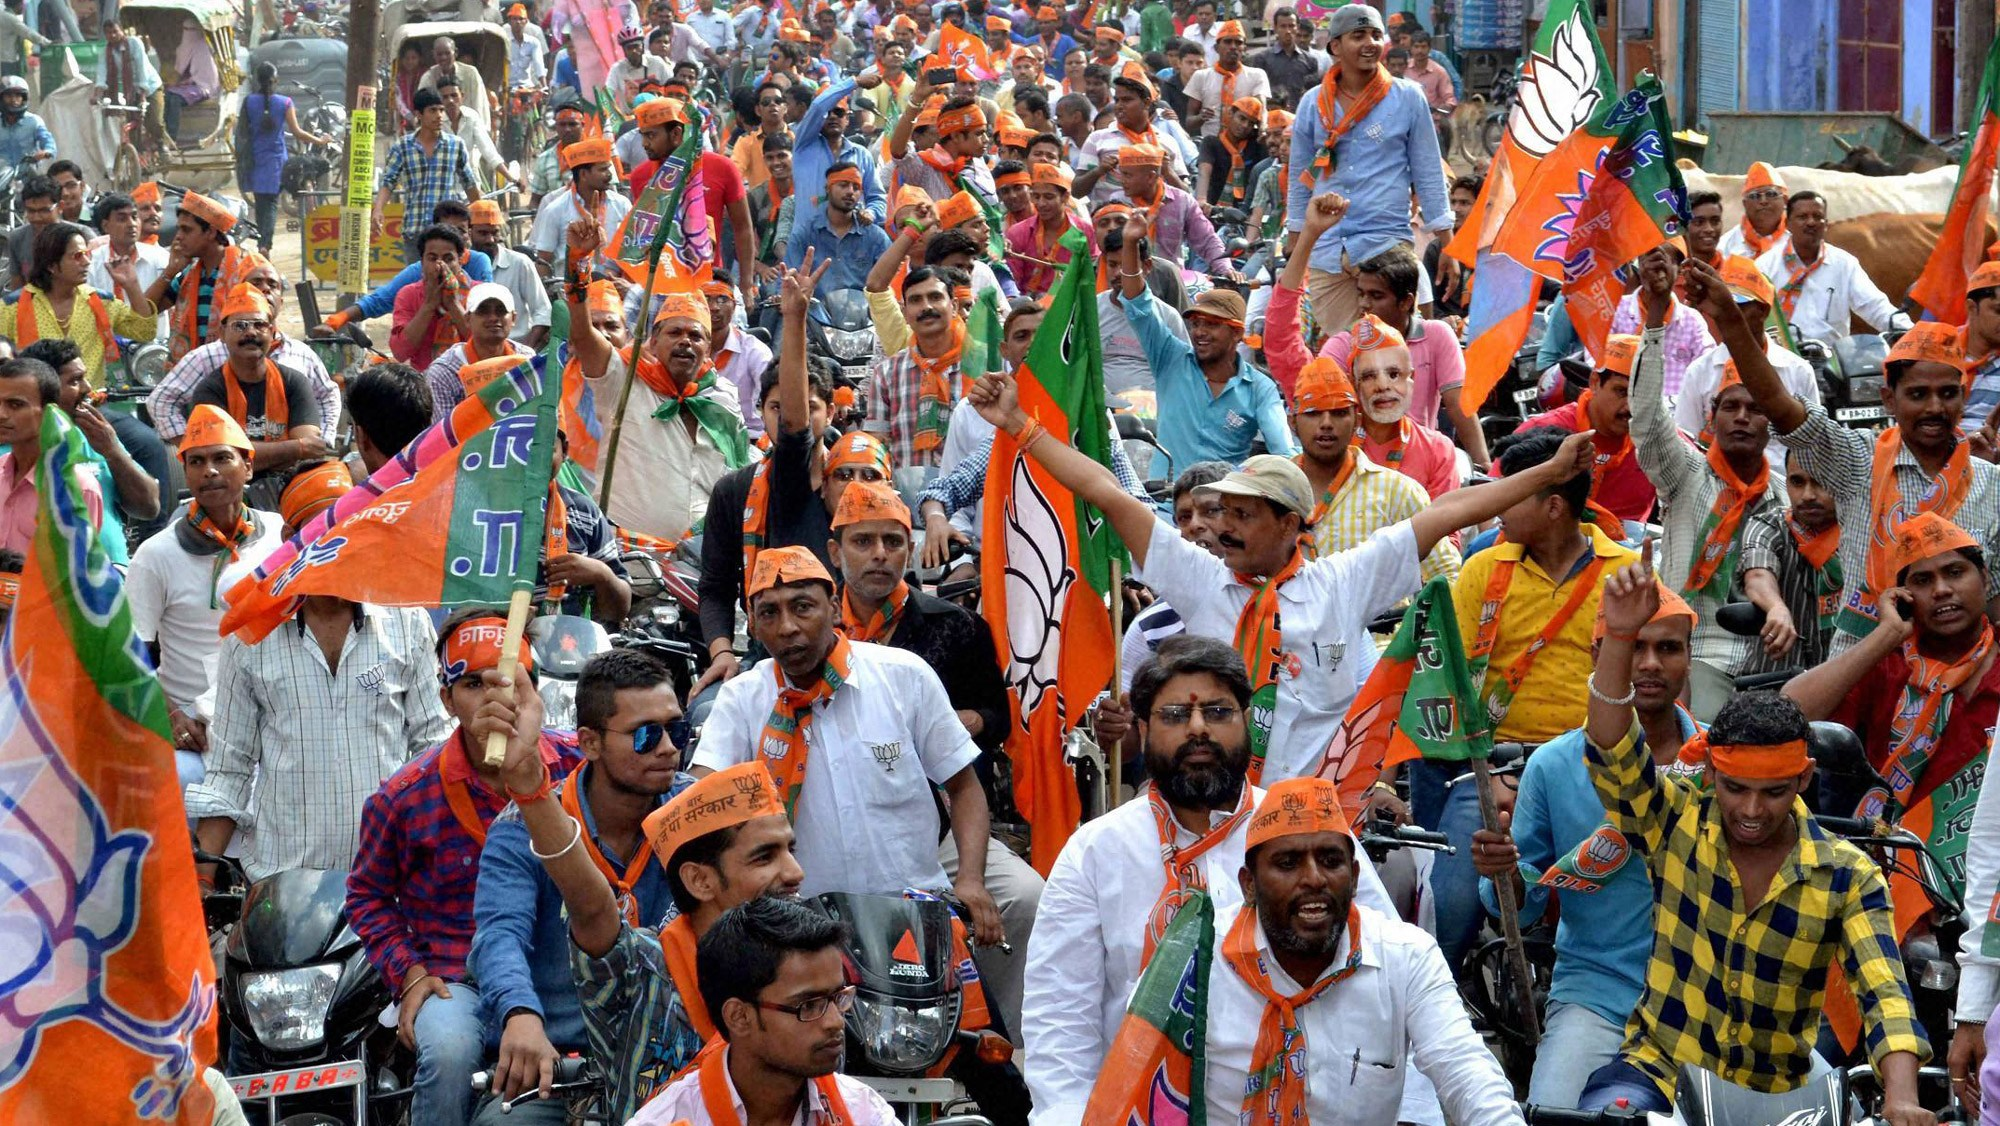 BJP supporters at a rally. Credit: PTI